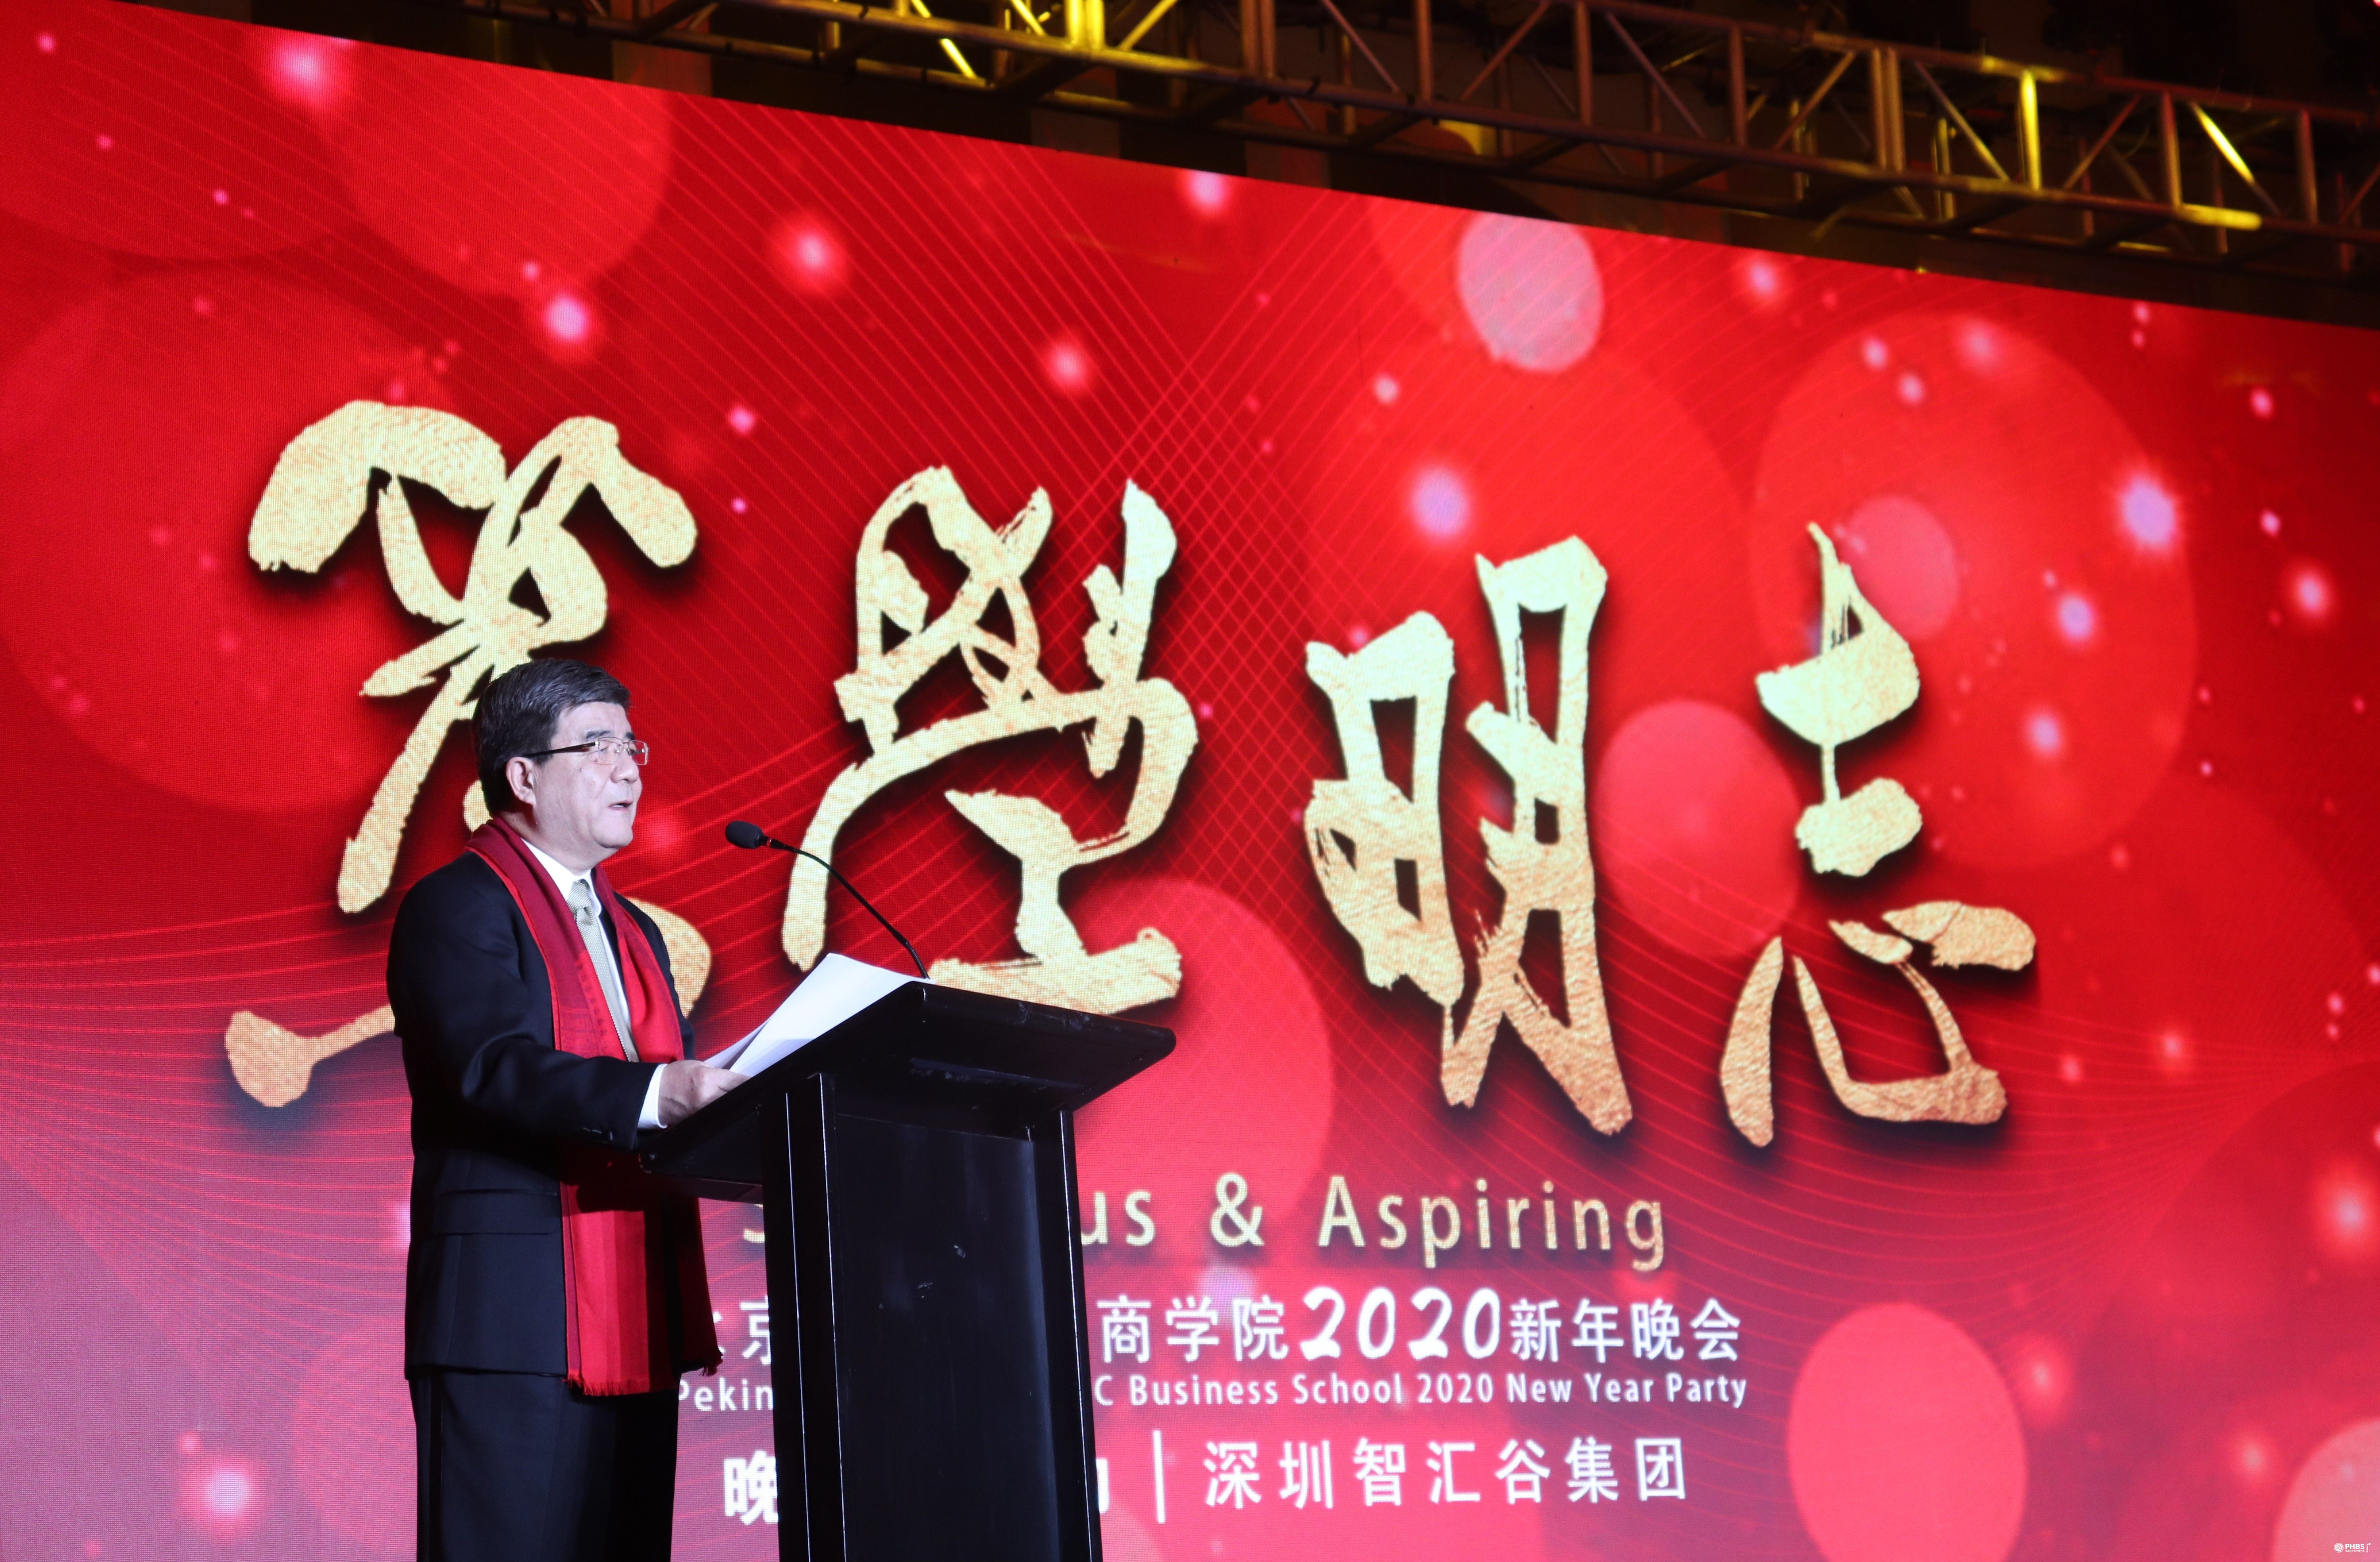 Studious and Aspiring | Dean Hai Wen's Remarks on 2020 New Year Party